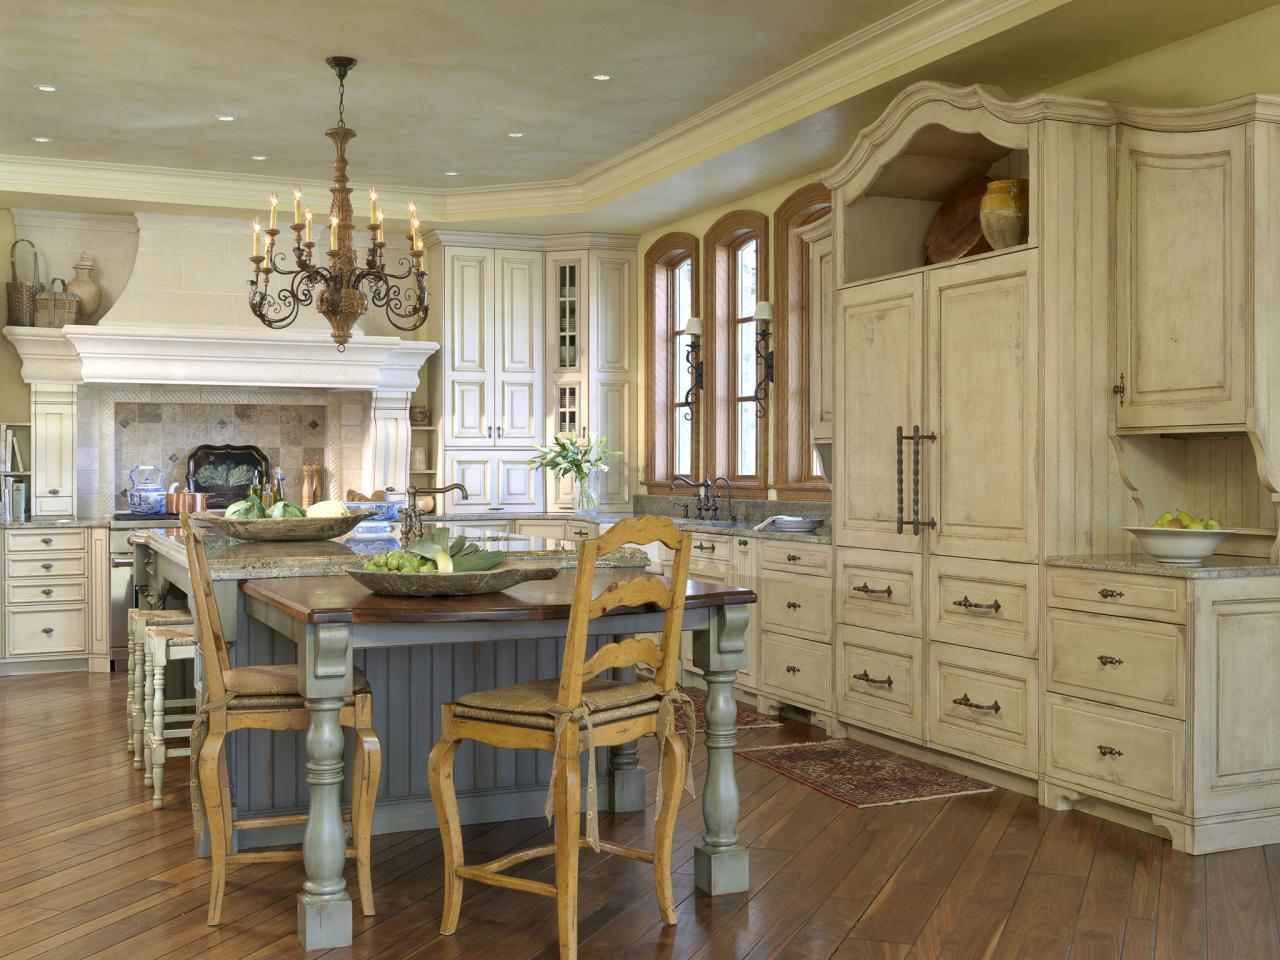 Antique Kitchen Islands Pictures Ideas Tips From HGTV HGTV